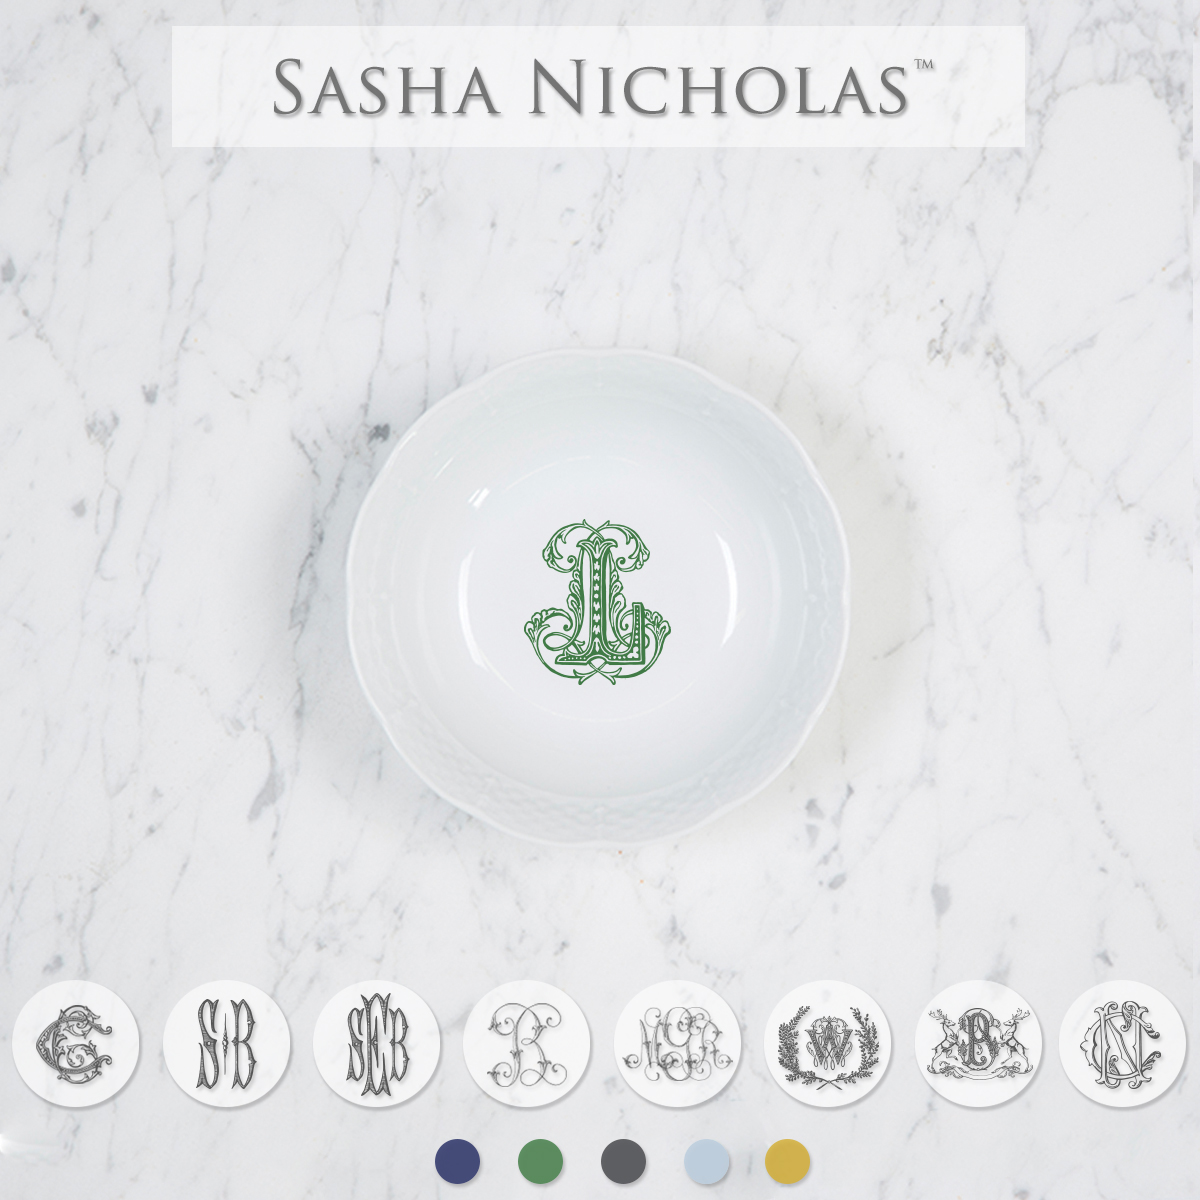 A perfect addition to your dinnerware collection and to set your tablescapes with.  It makes a great small gift for your wedding registry. Choose from their signature font styles or use a custom monogram or crest of your choice. This custom monogram by Empress Stationary looks amazing paired with the classic green Herend. | Sasha Nicholas's white porcelain petite bowl